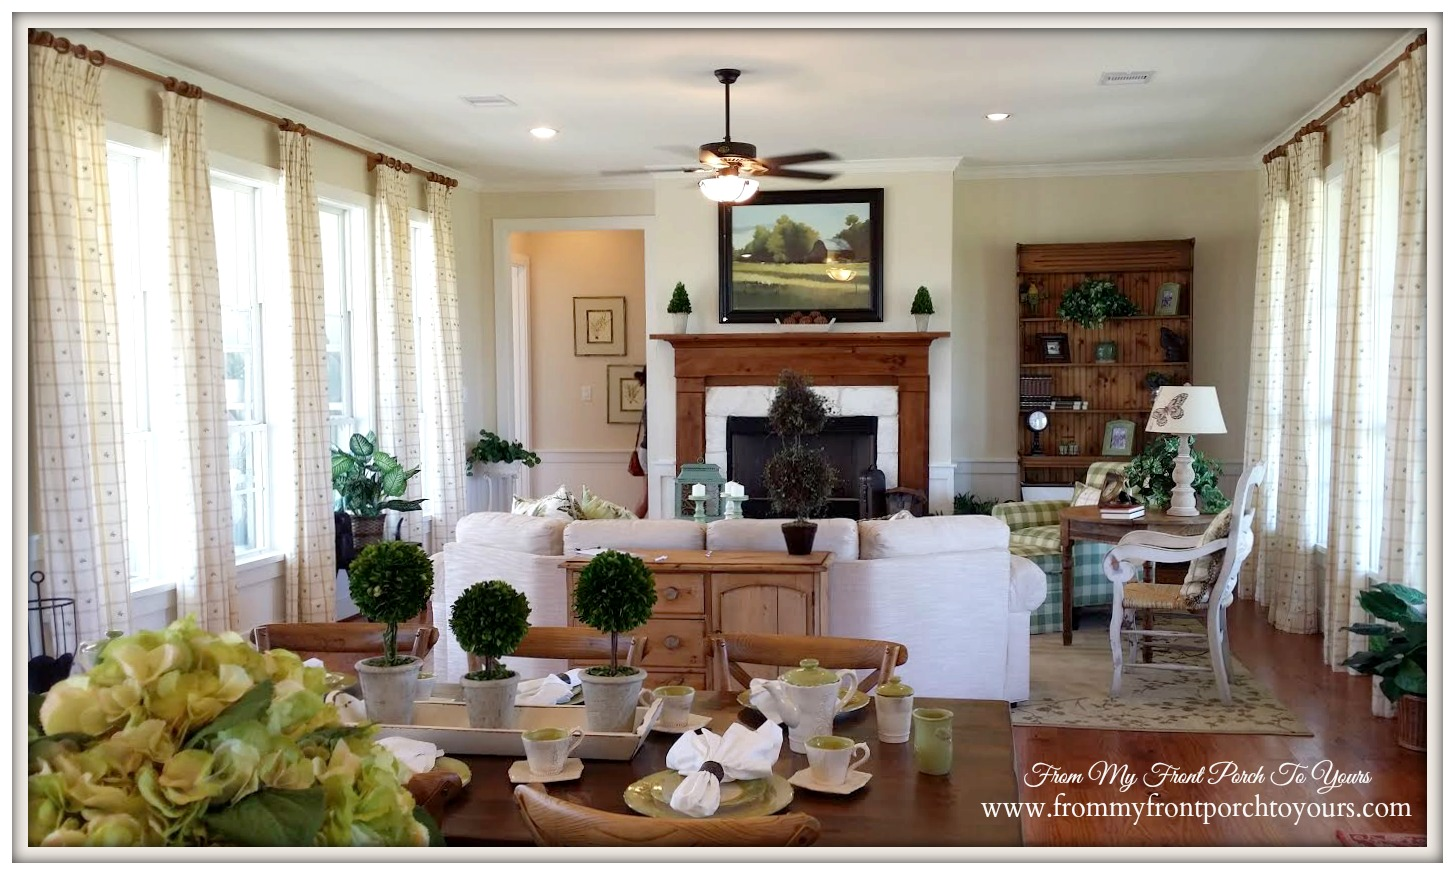 Home Builder Floor Plans From My Front Porch To Yours Farmhouse Model Home Tour